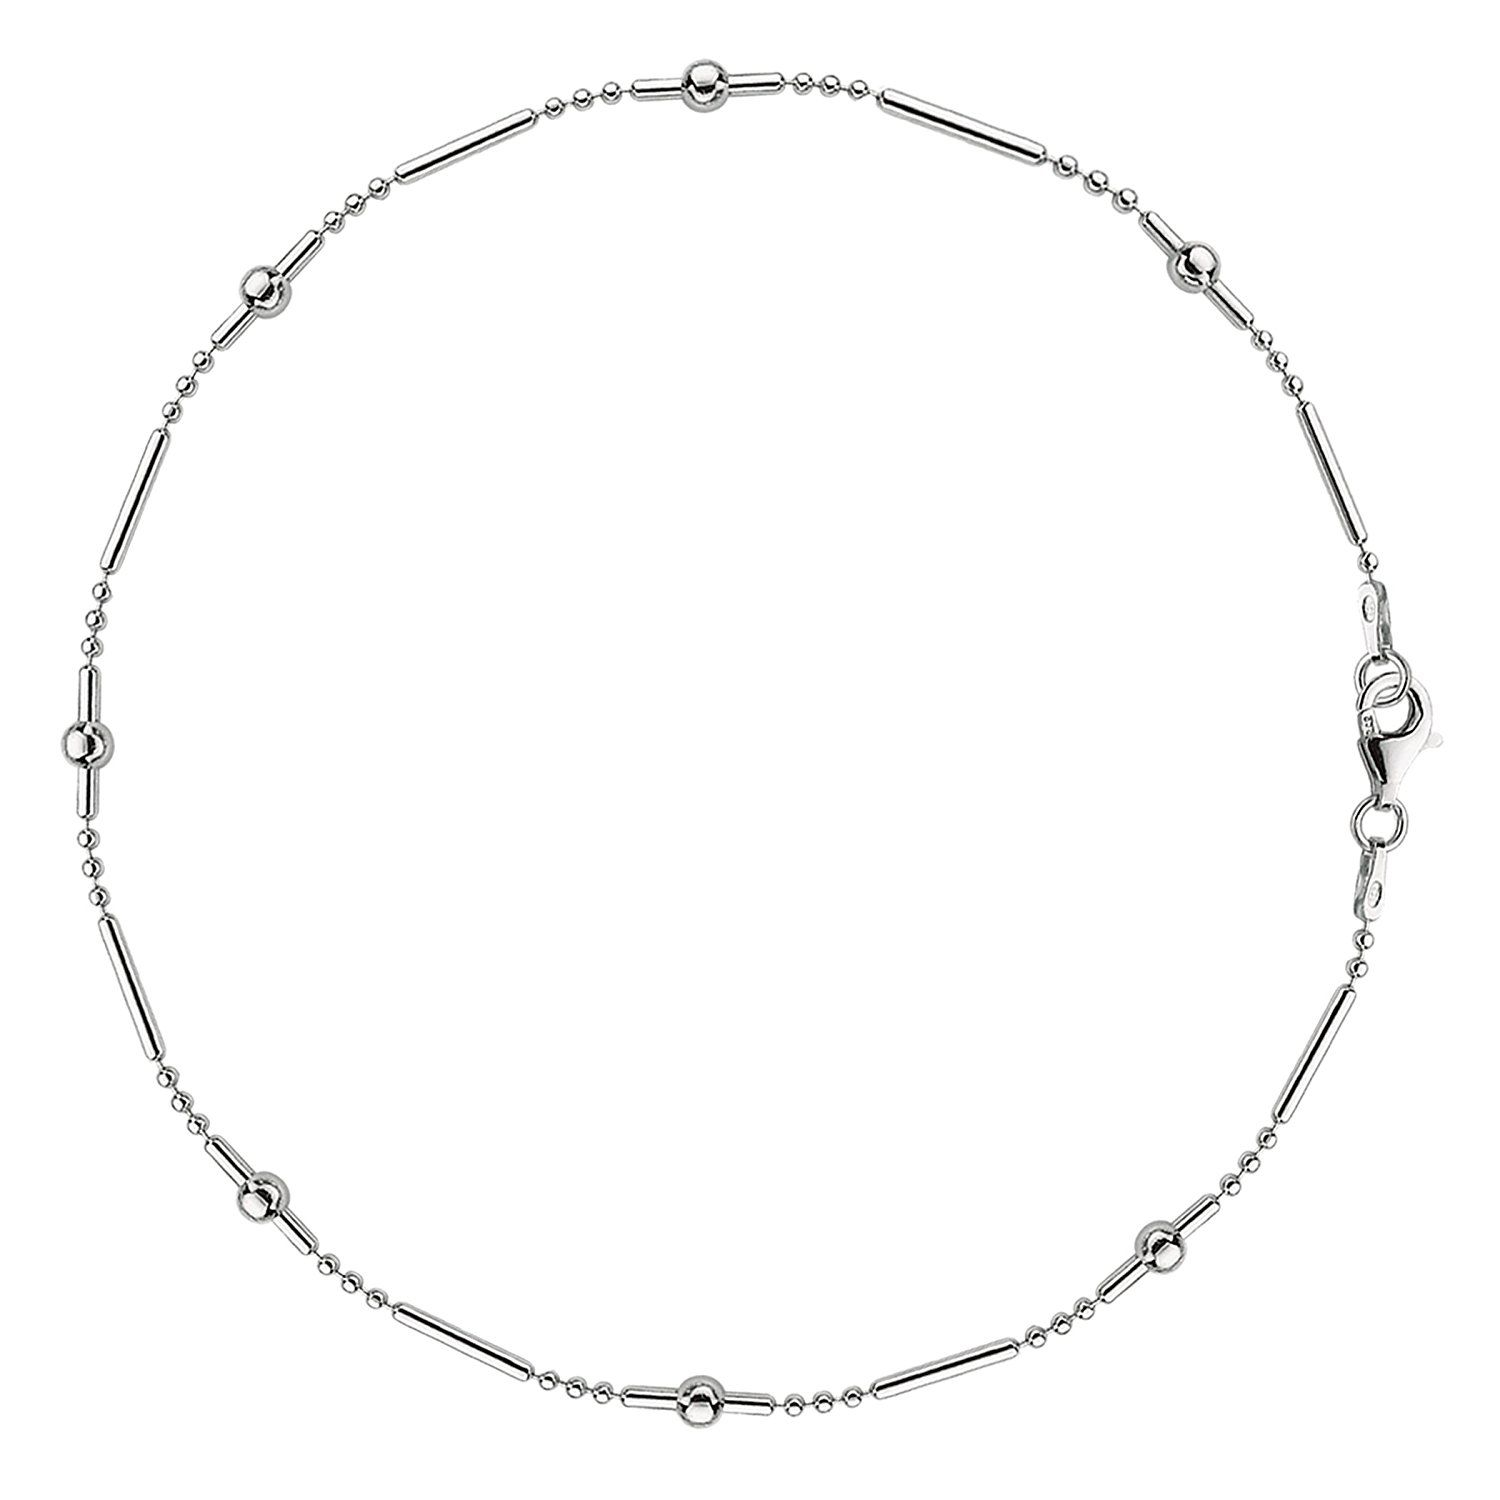 pinterest check be link silver chain bracelets sparkly sterling pin anklet sure fancy out bracelet awesome this beads by product on in to jewel ankle